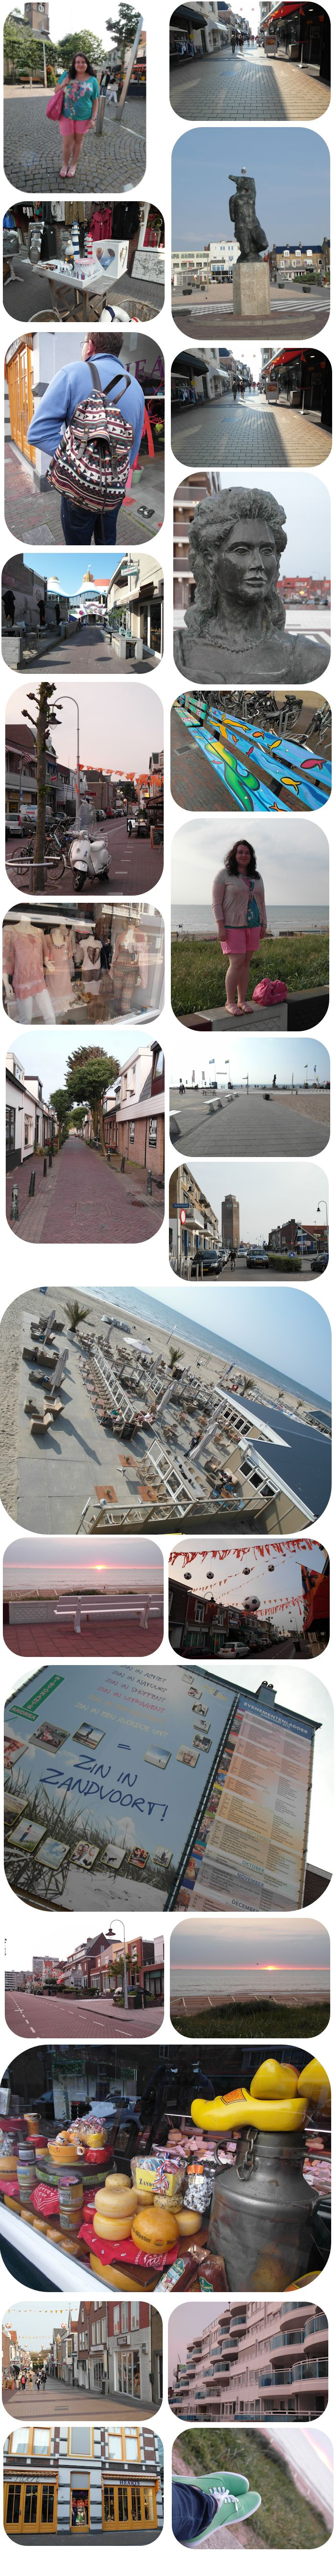 My Holland trip  - pictures from Zandvoort